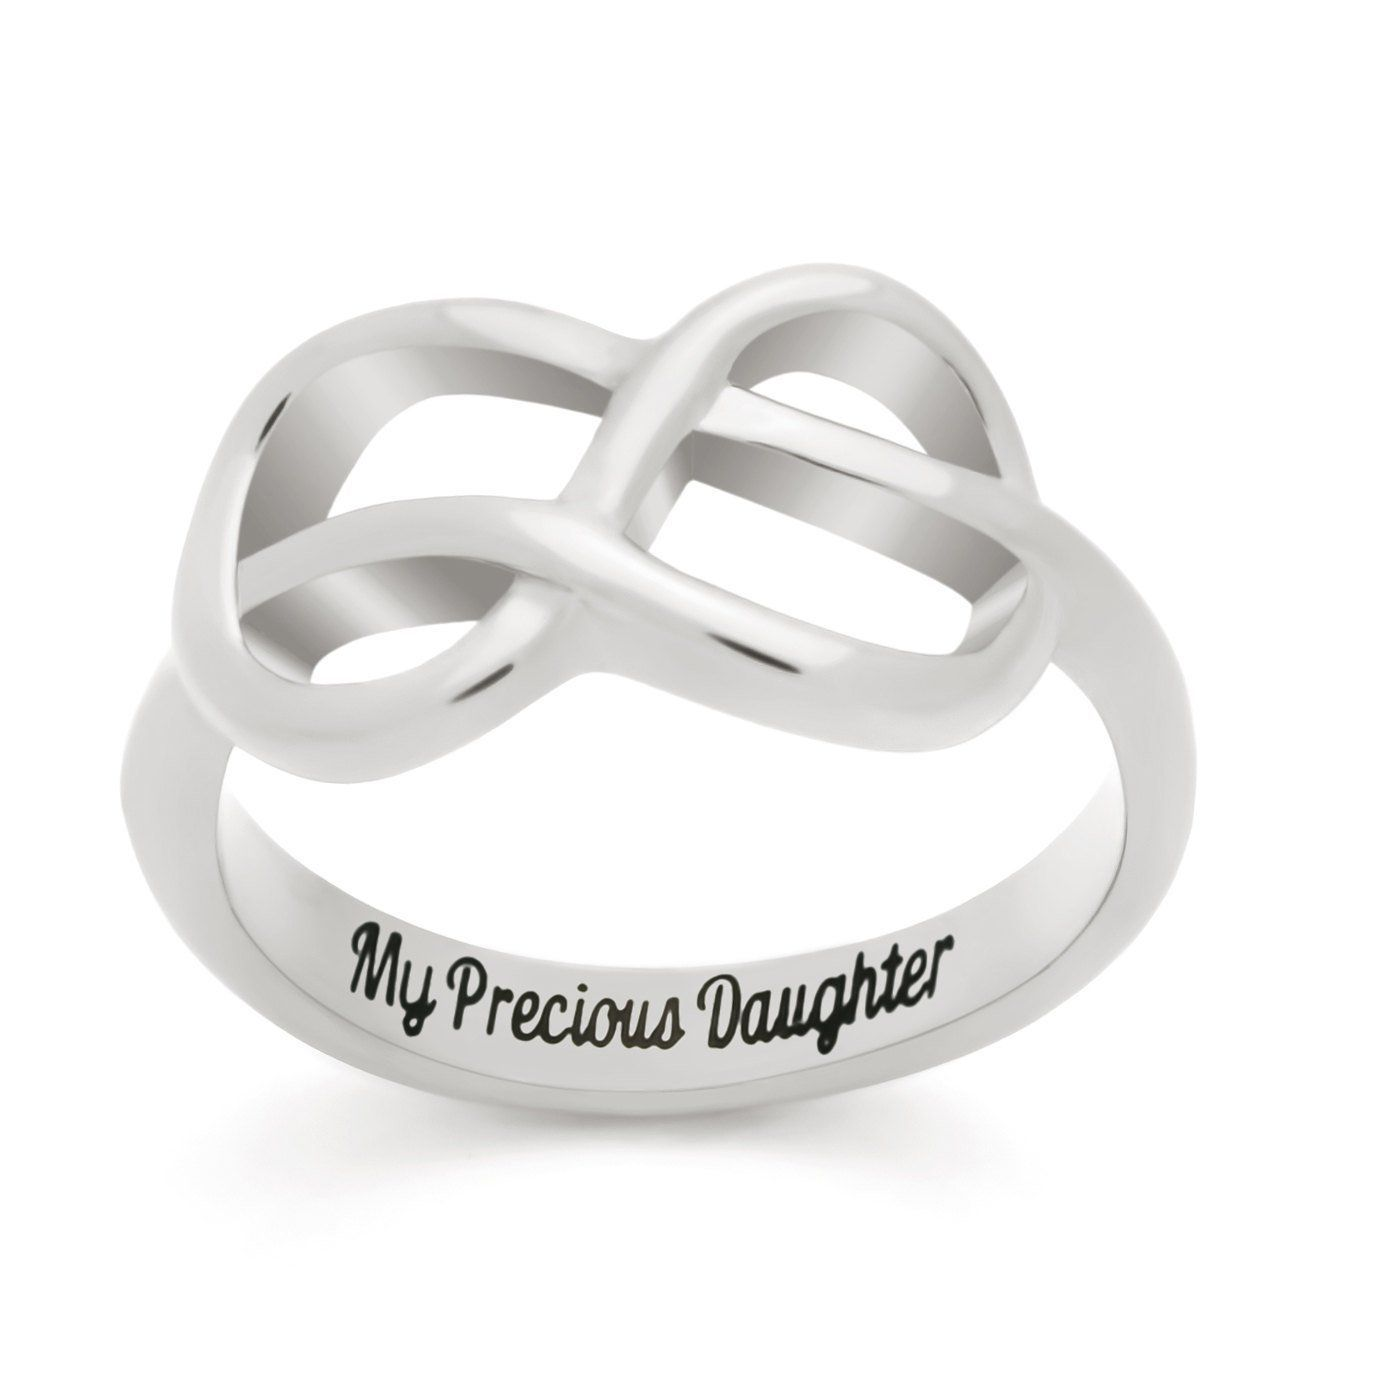 rings ring infinity band wedding silver graphic en love sterling double